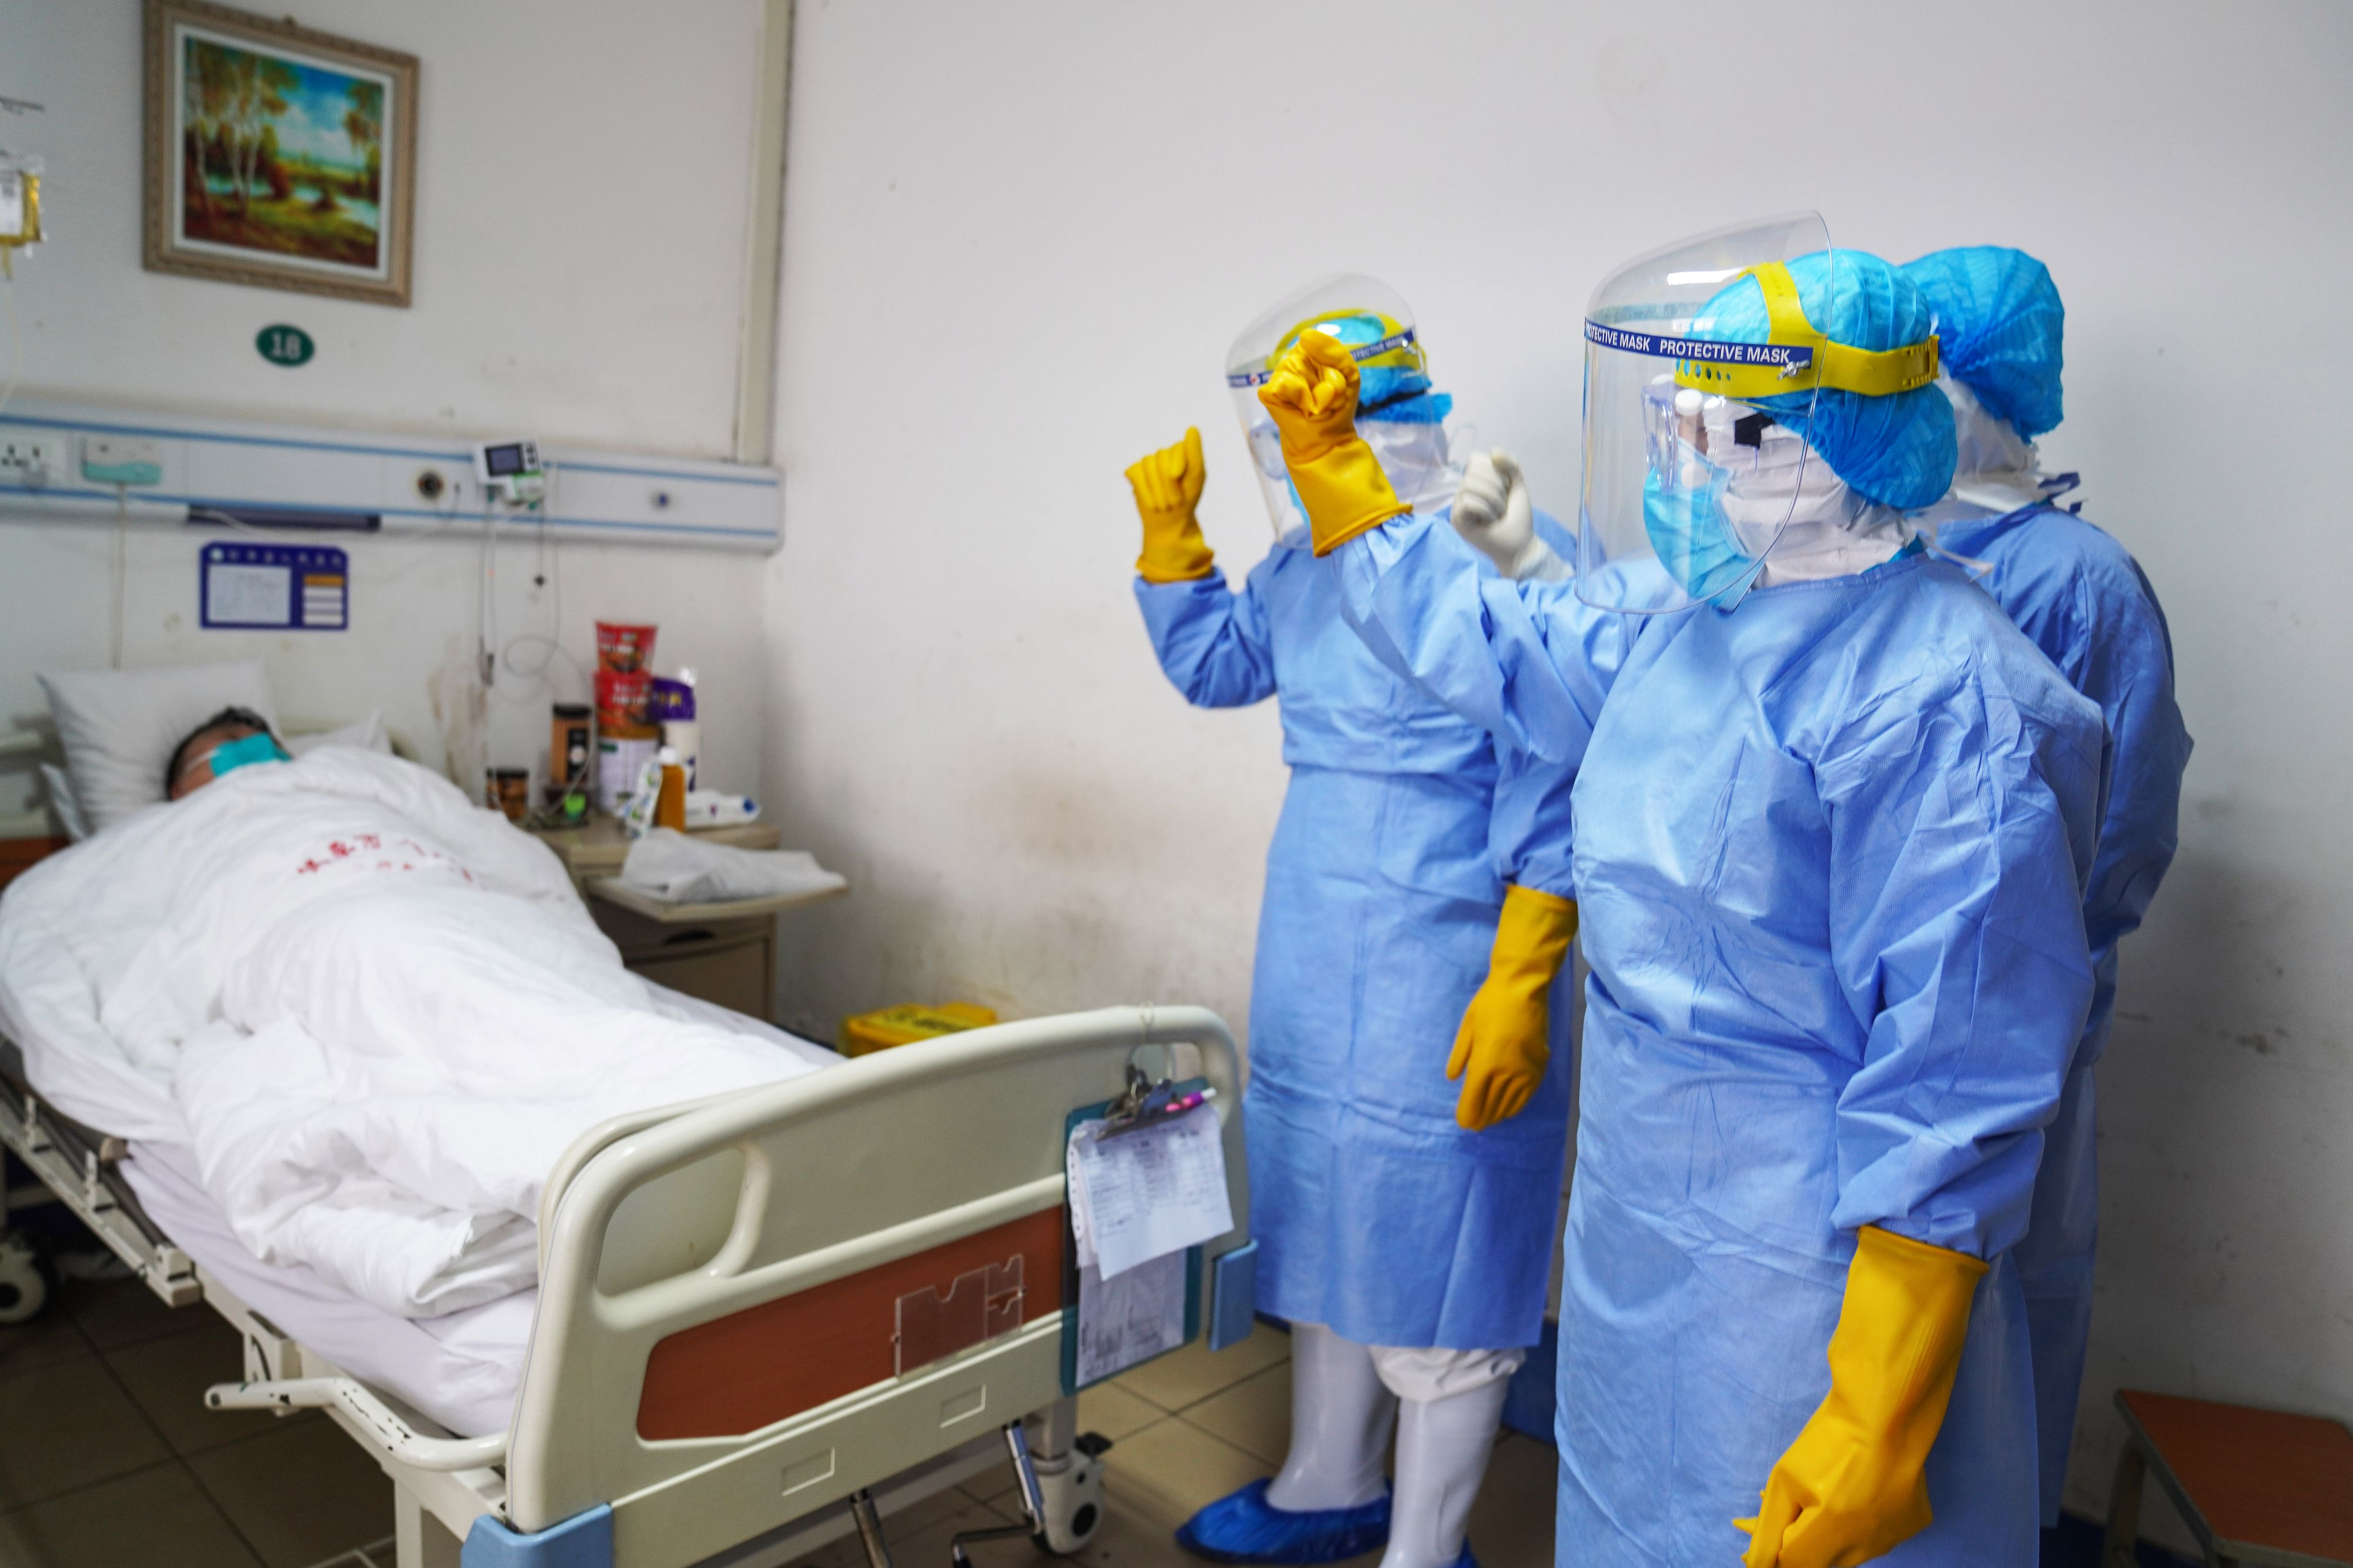 This photo taken on January 28, 2020 shows medical staff members cheering up a patient infected by the novel coronavirus in an isolation ward at a hospital in Zouping in China's easter Shandong province. - China faced deepening isolation over its coronavirus epidemic on February 1 as the death toll soared to 259, with the United States leading a growing list of nations to impose extraordinary Chinese travel bans. (Photo by STR / AFP) / China OUT (Photo by STR/AFP via Getty Images)